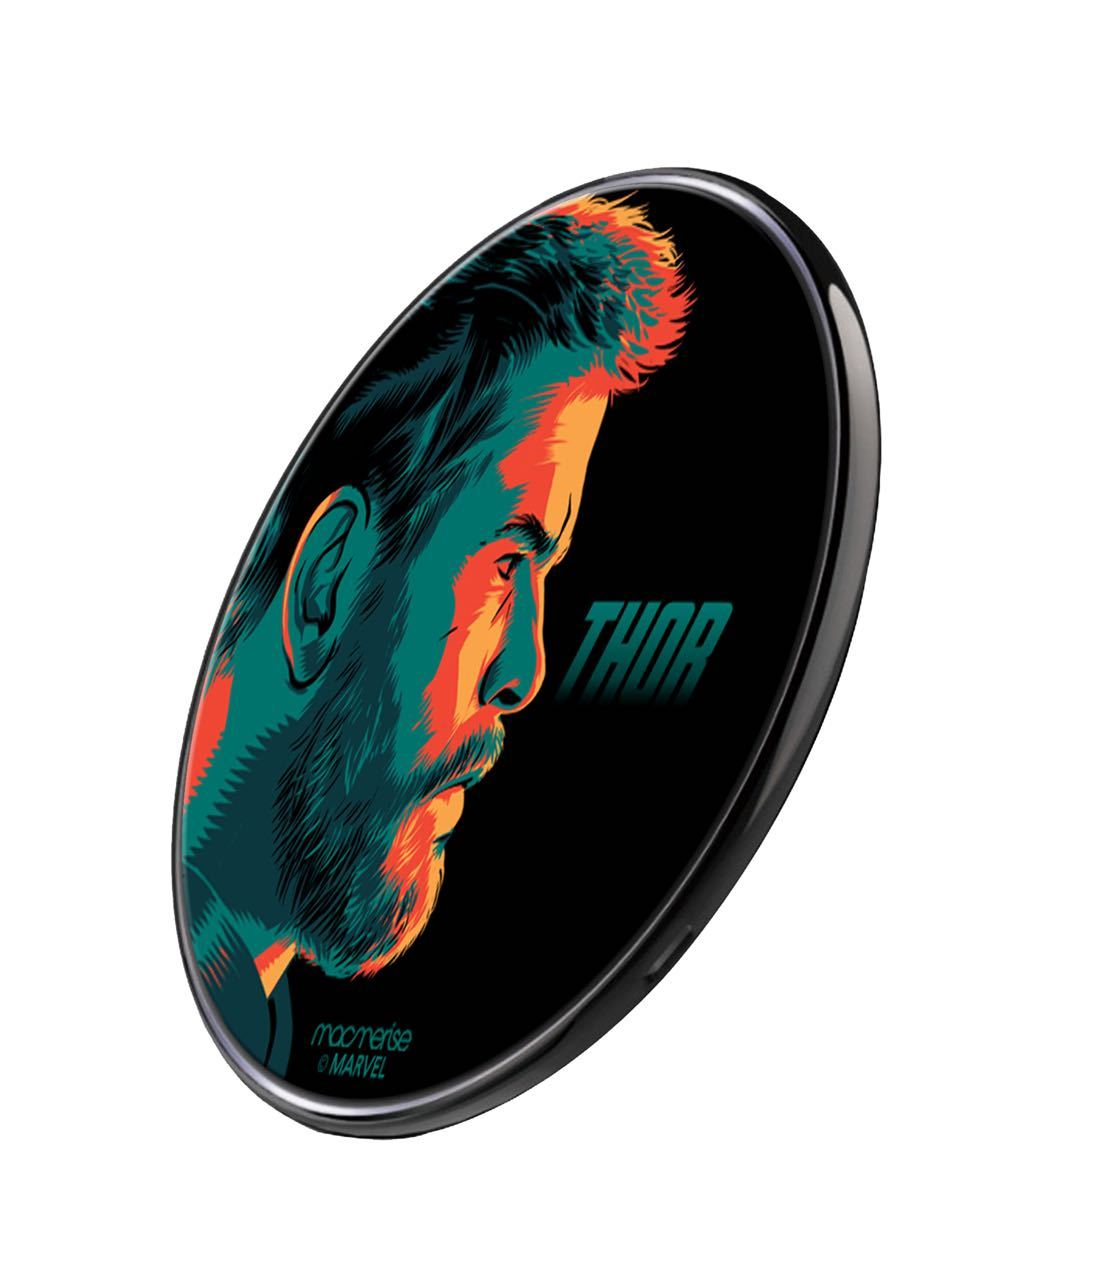 Illuminated Thor Wireless Charger by Macmerise -Macmerise - India - www.superherotoystore.com